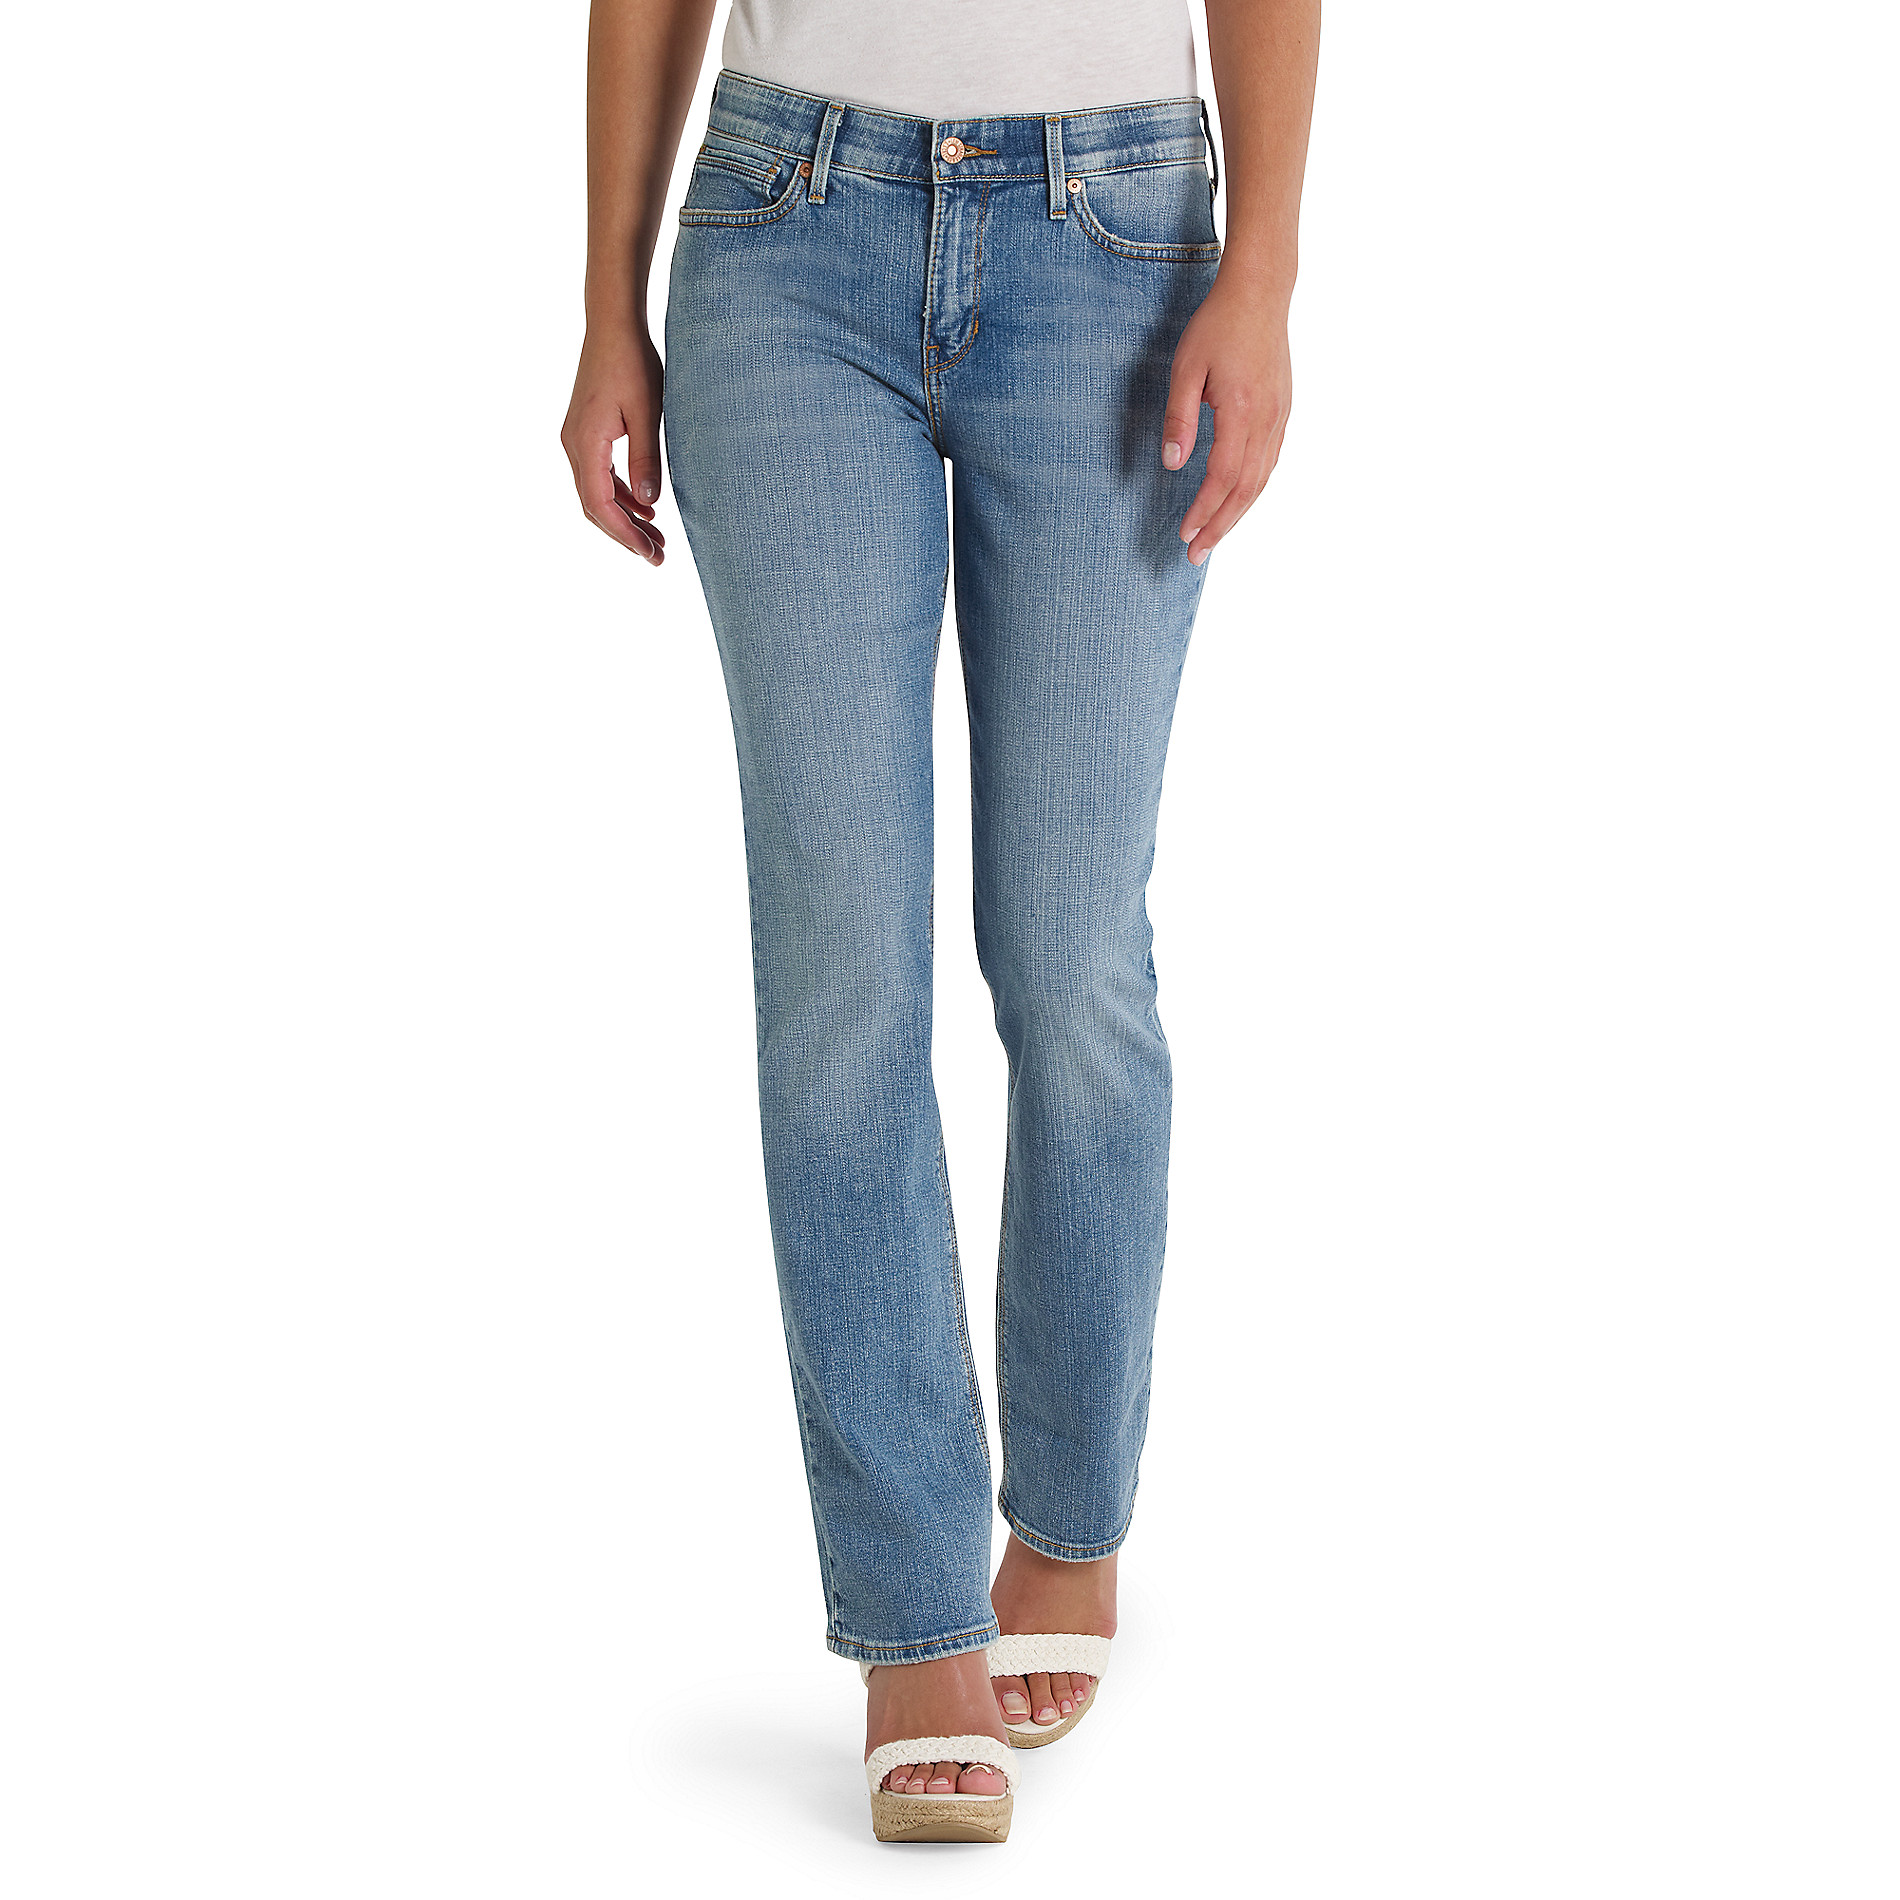 Levi's® 525™ Perfect Waist Straight Fit Denim Jeans For Women